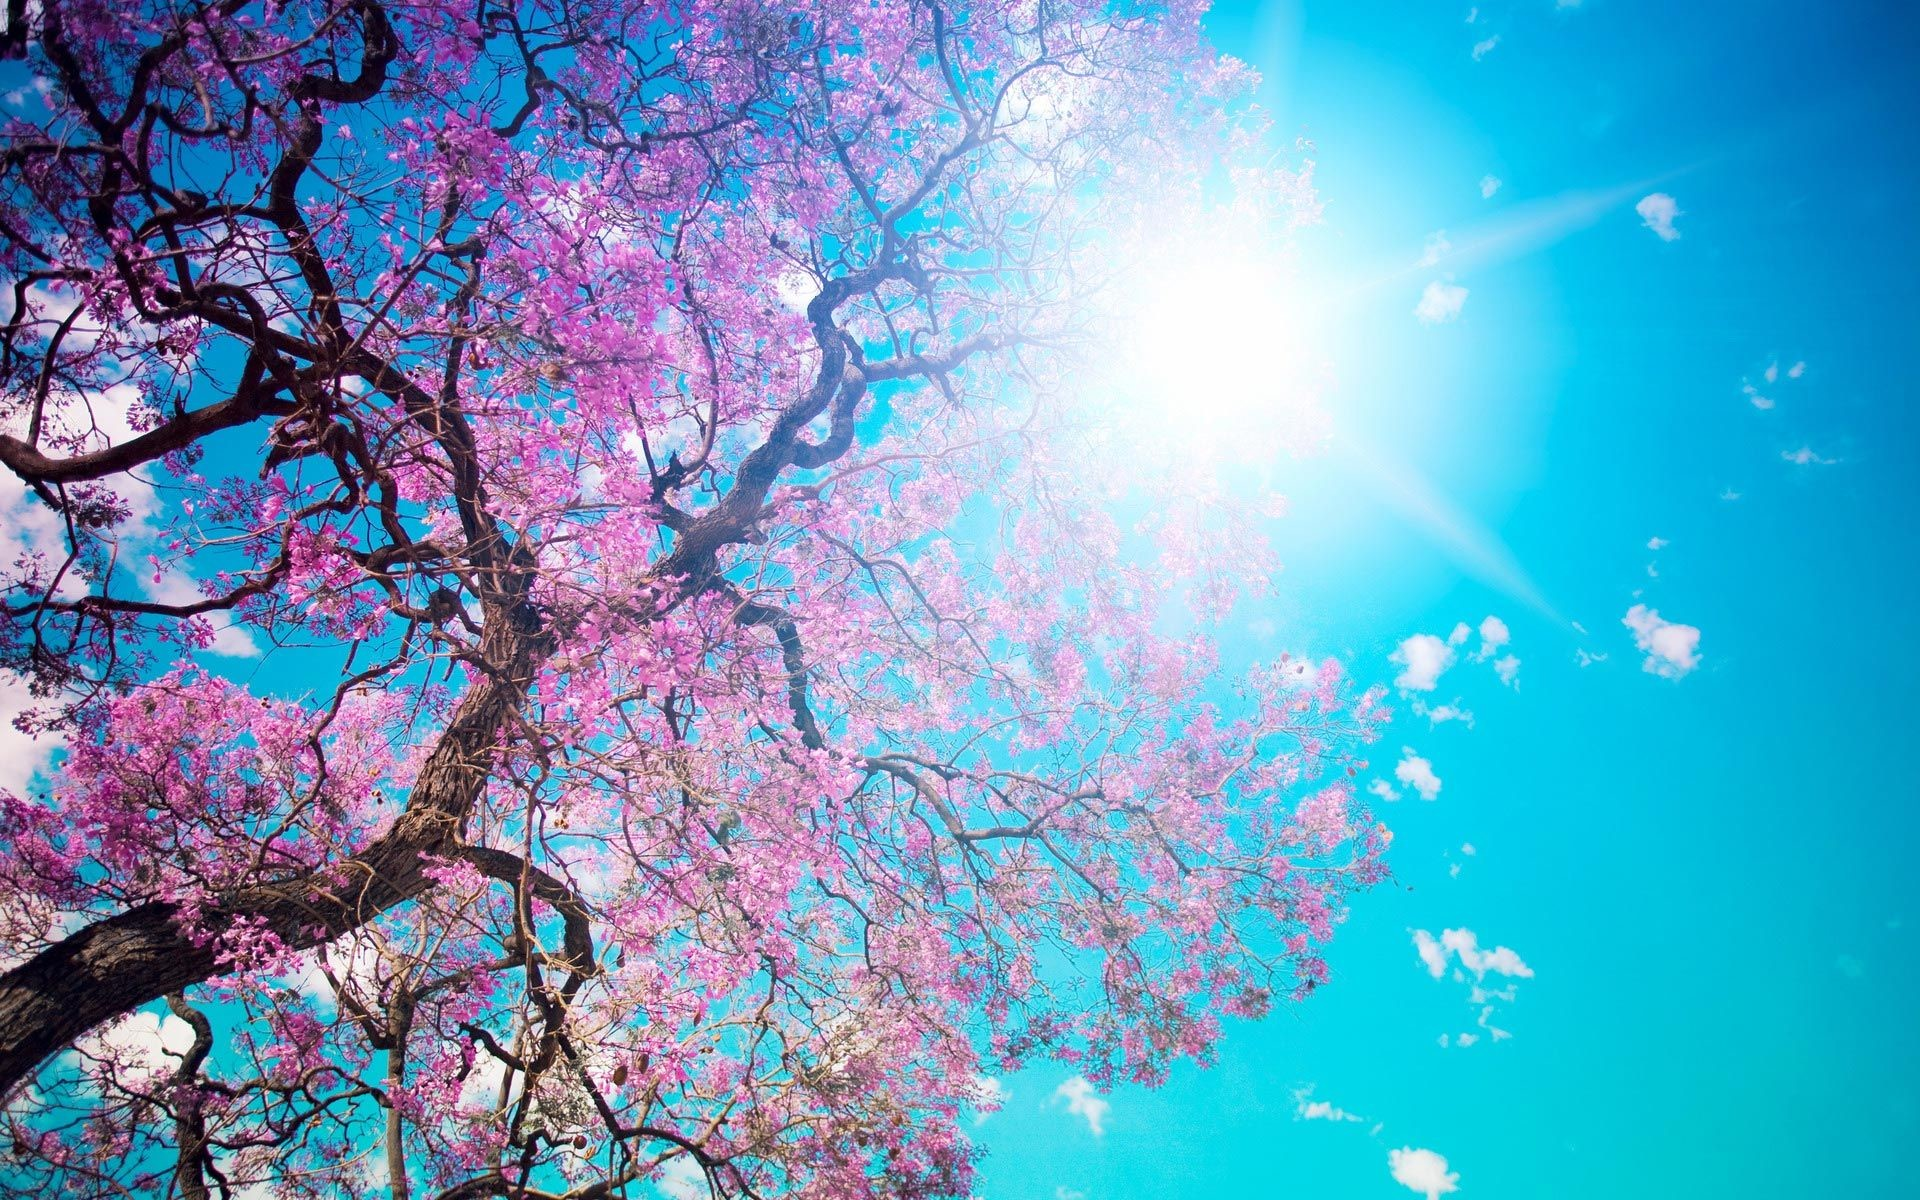 Free Scenery Wallpaper – Includes the Scene of Blooming Spring .